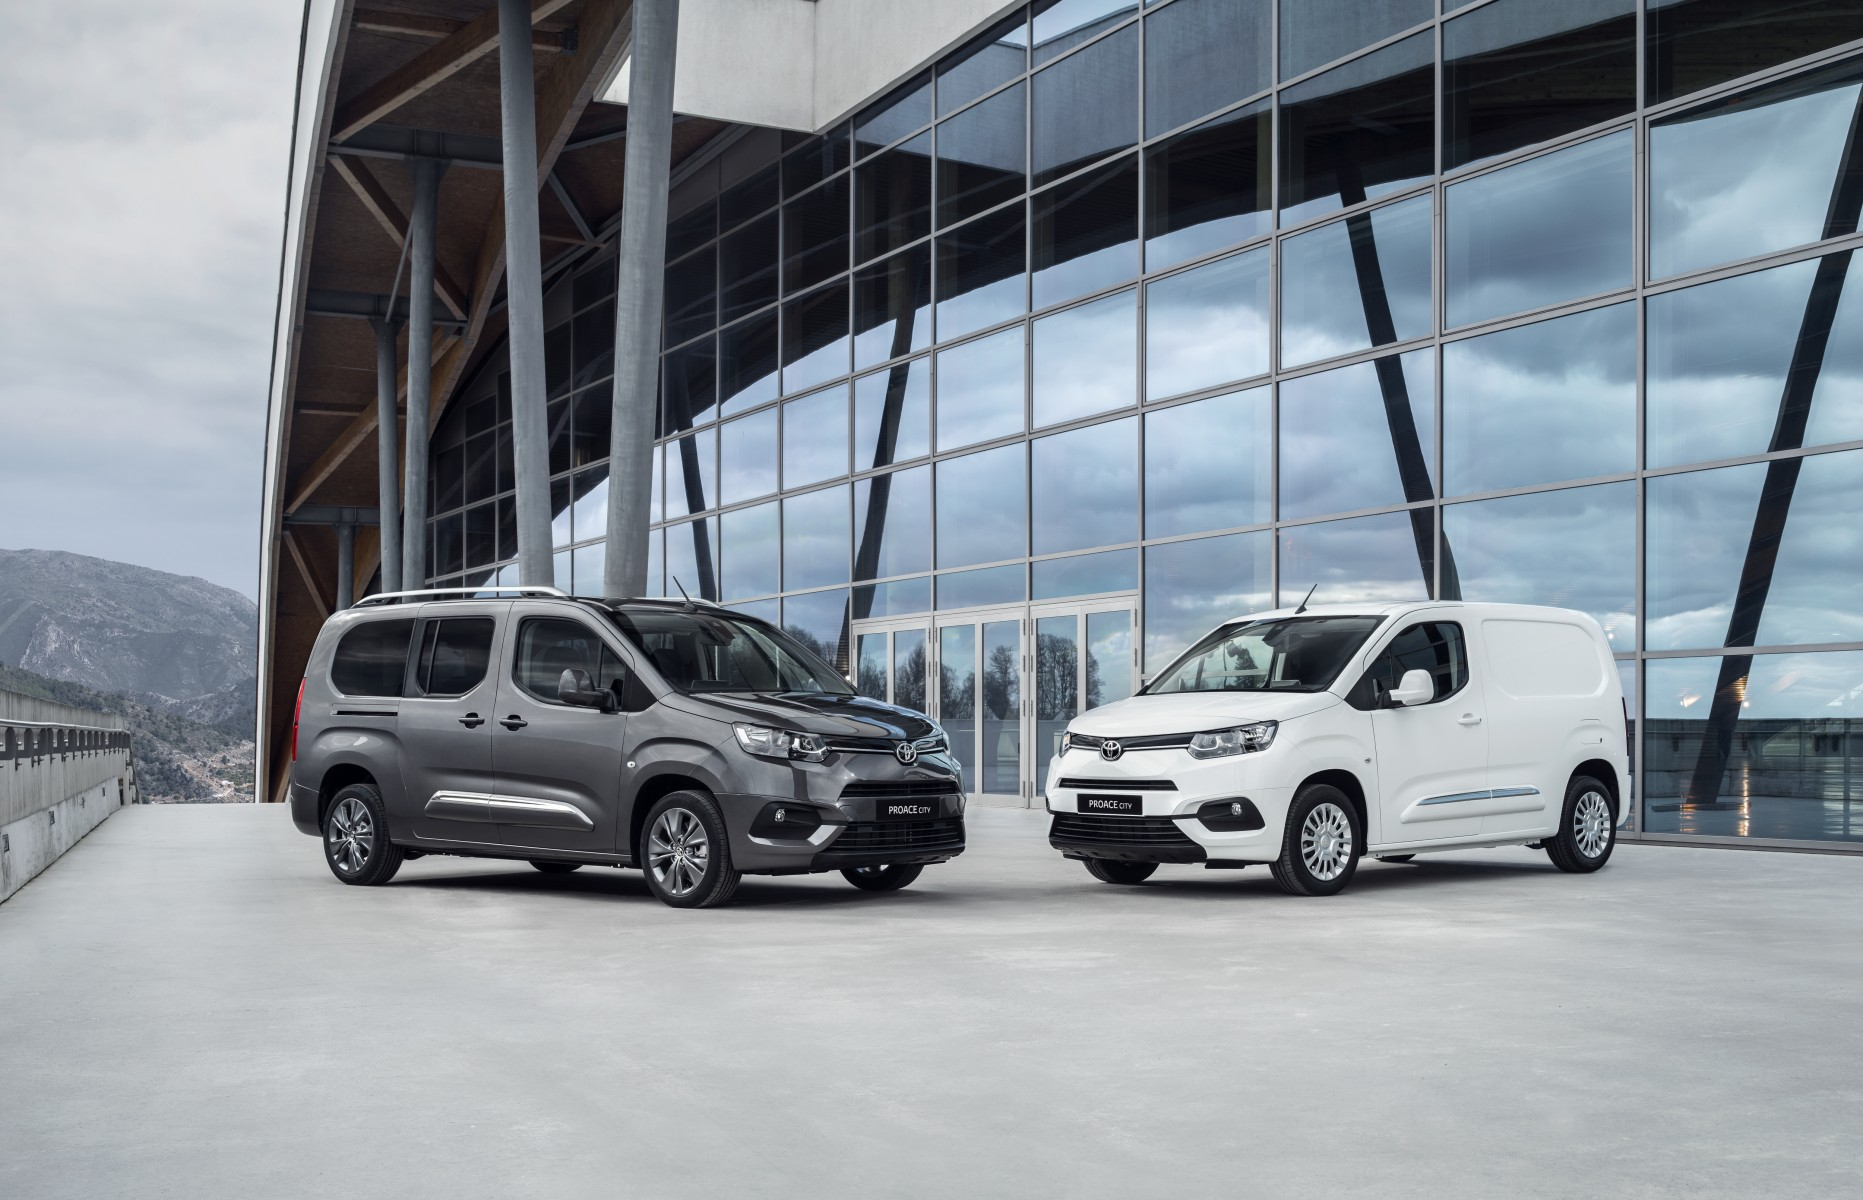 The new Toyota PROACE CITY